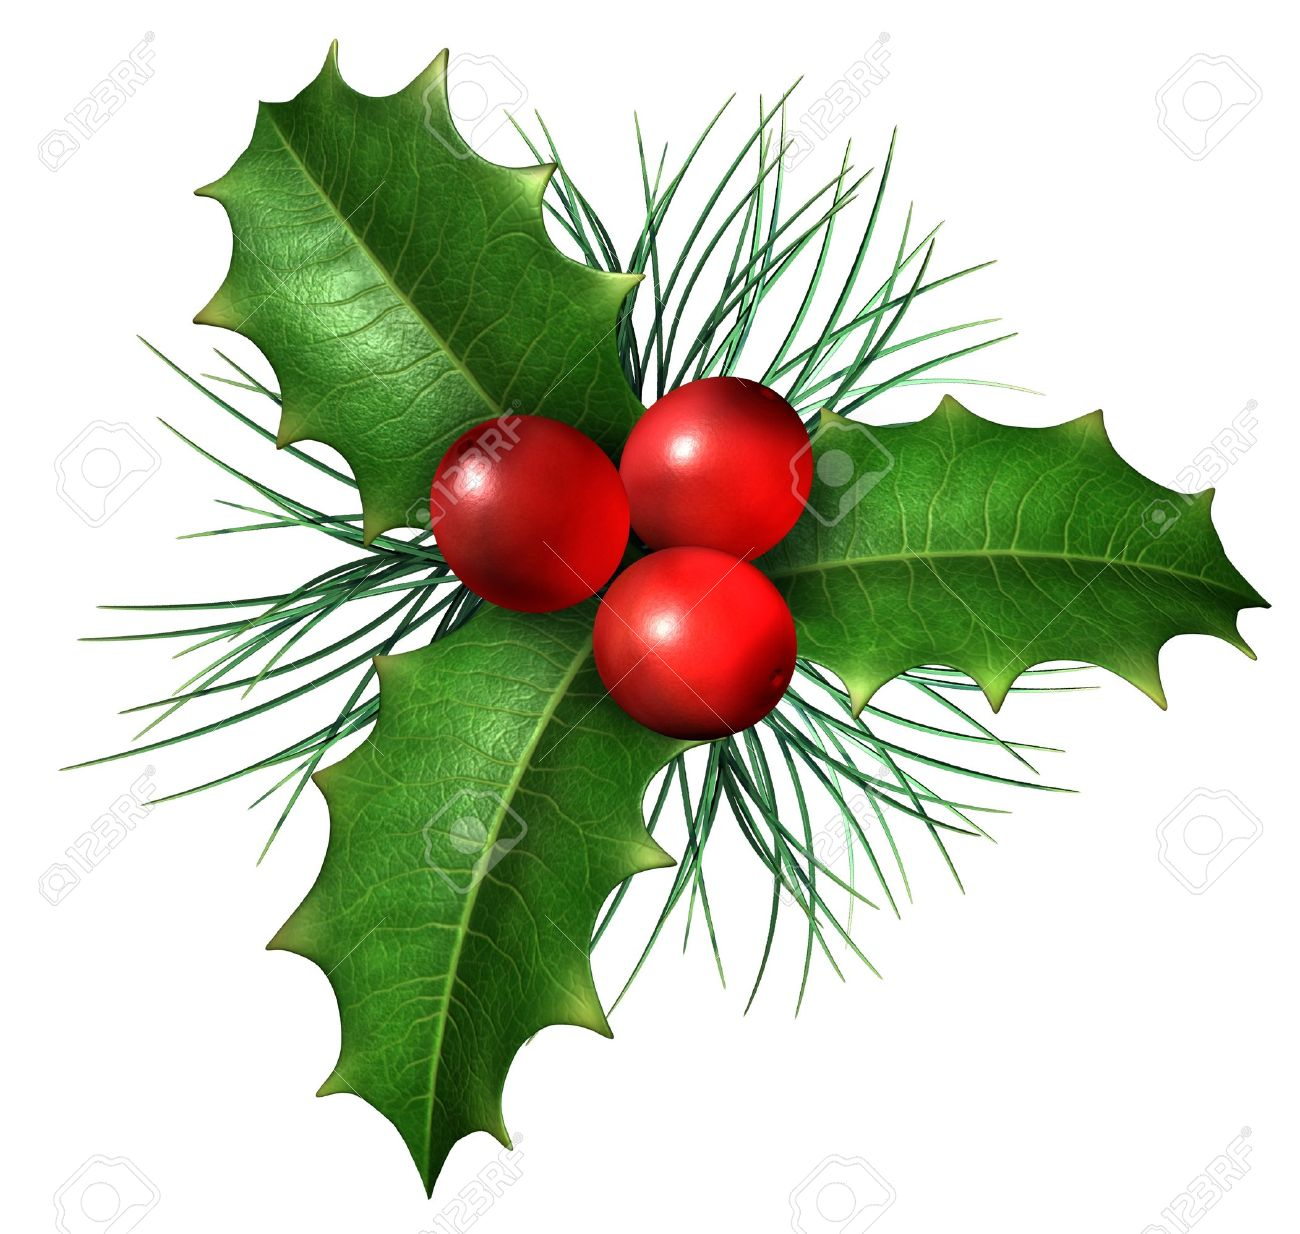 christmas holly images